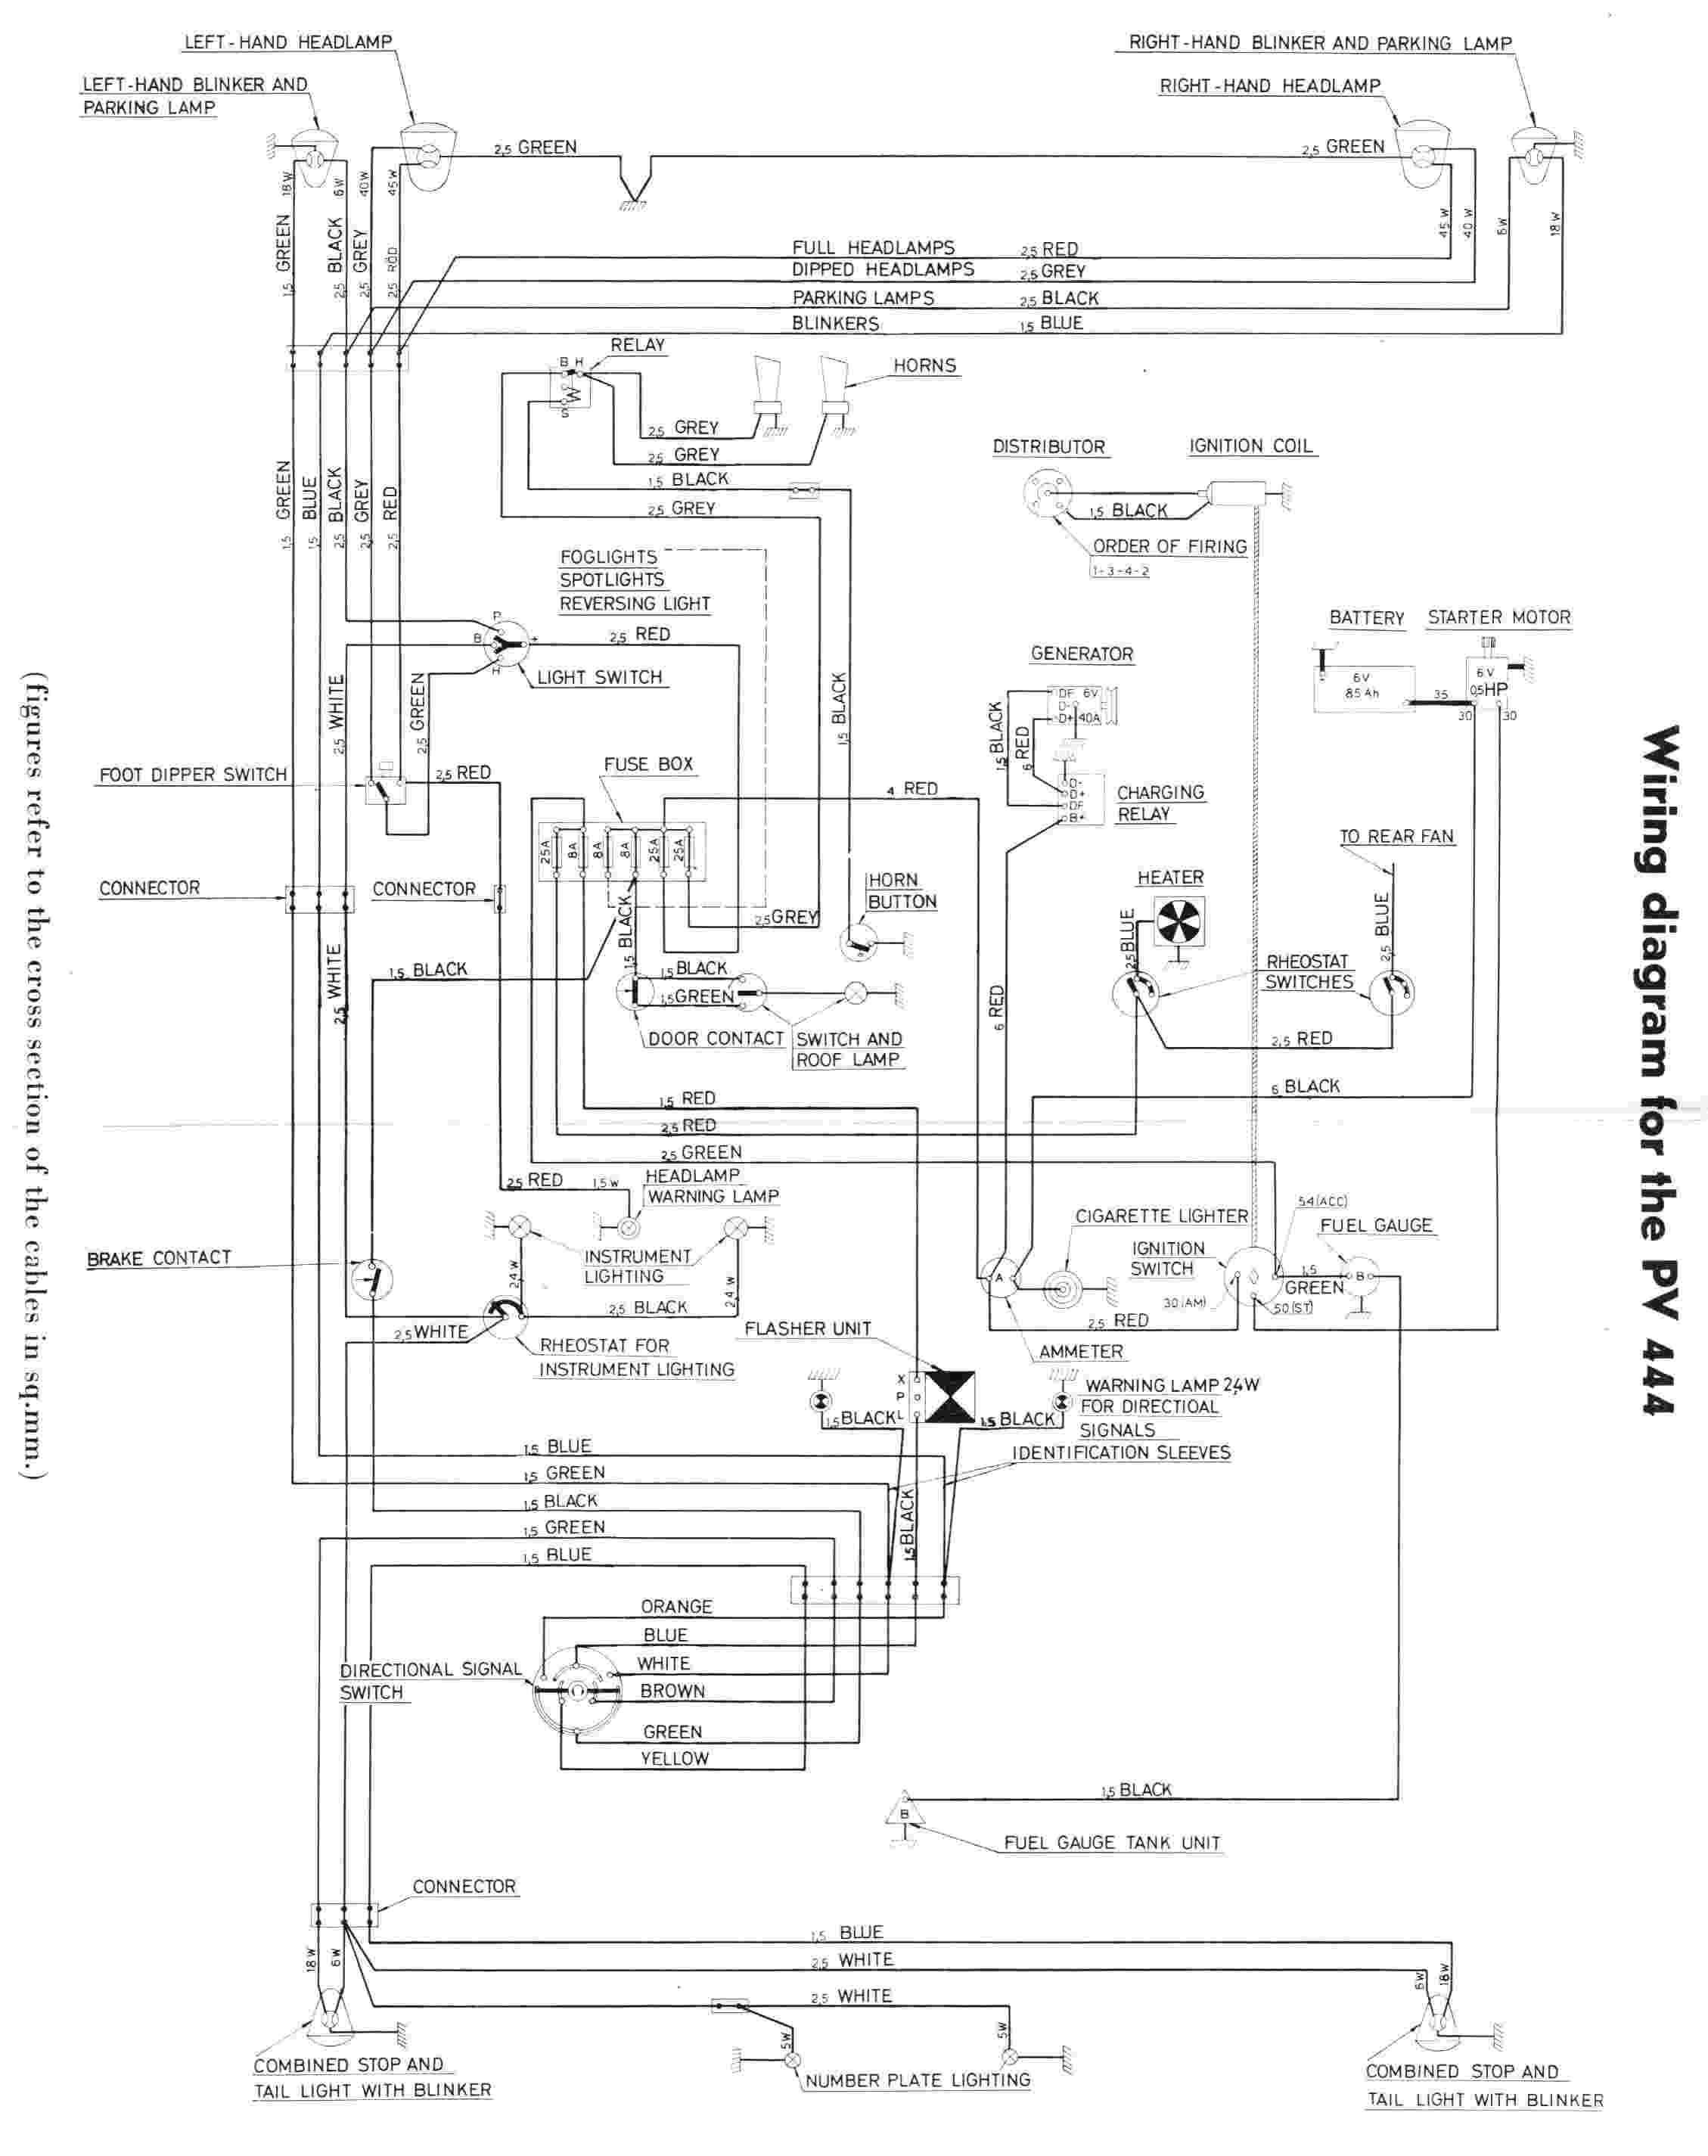 Volvo Wiring Diagrams 940 - Trusted Wiring Diagram